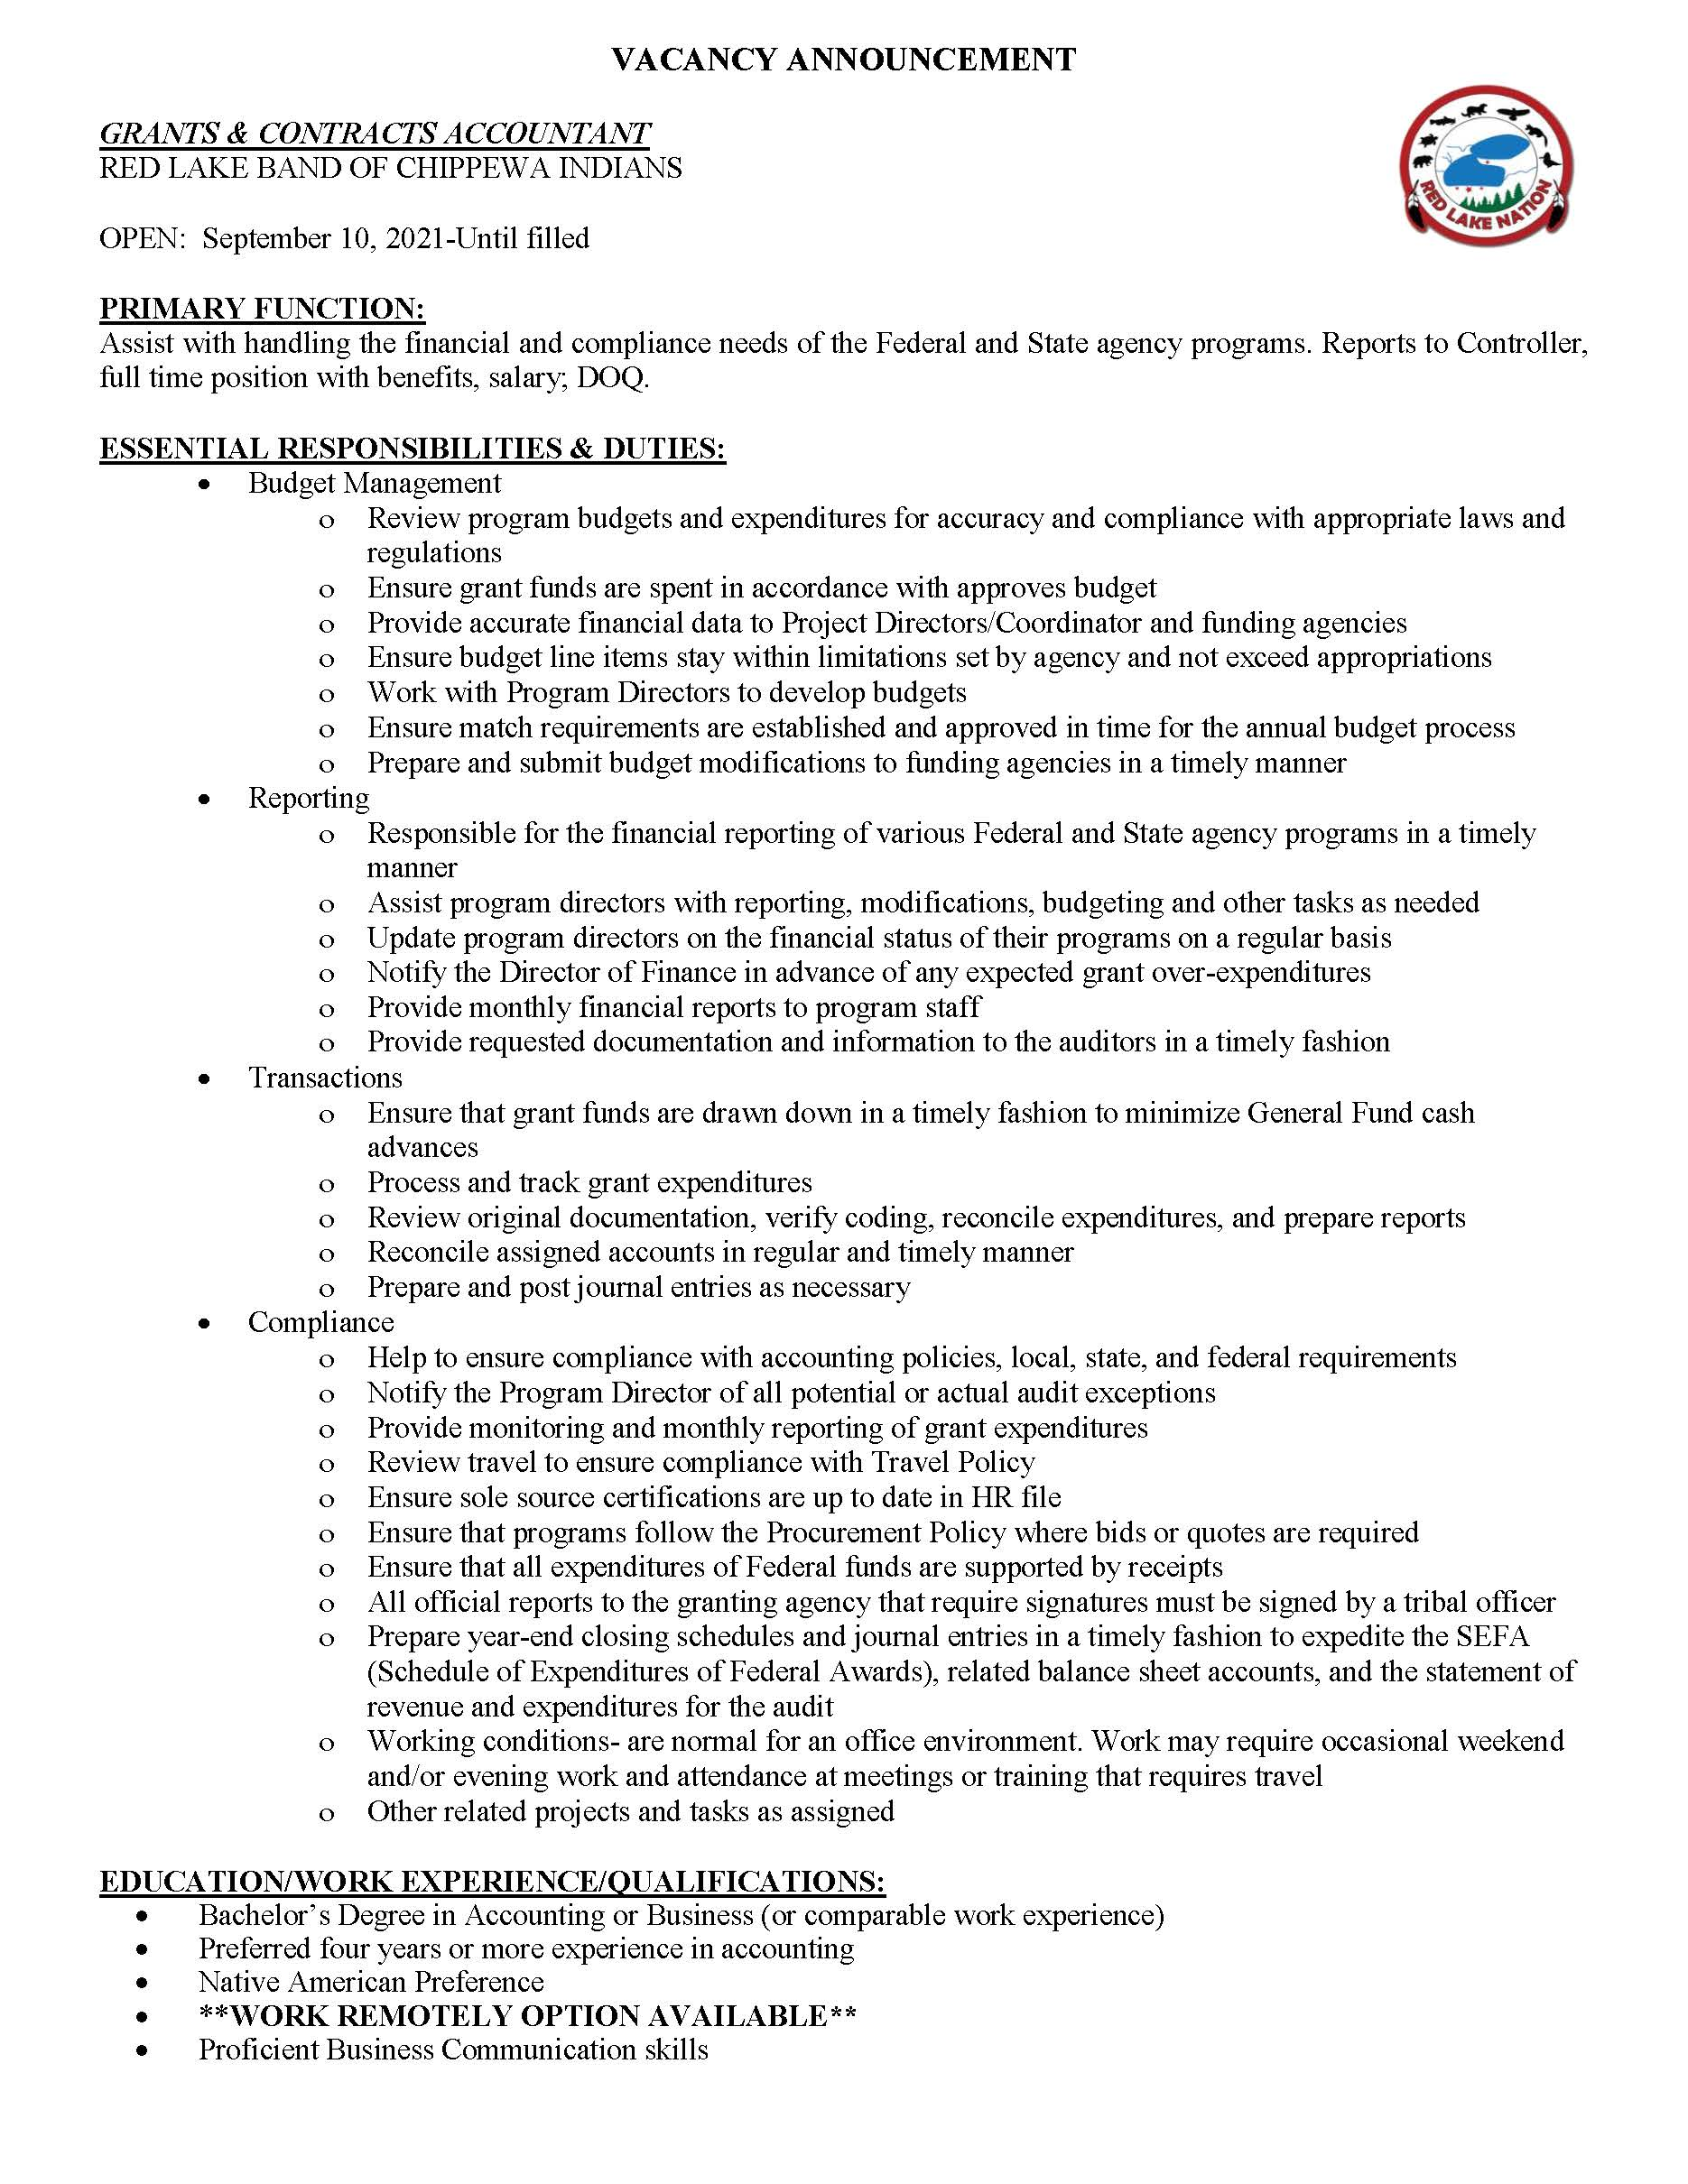 Grants Contracts Accountant-RLBCI- Job Posting 9-10-2021 (002)_Page_1